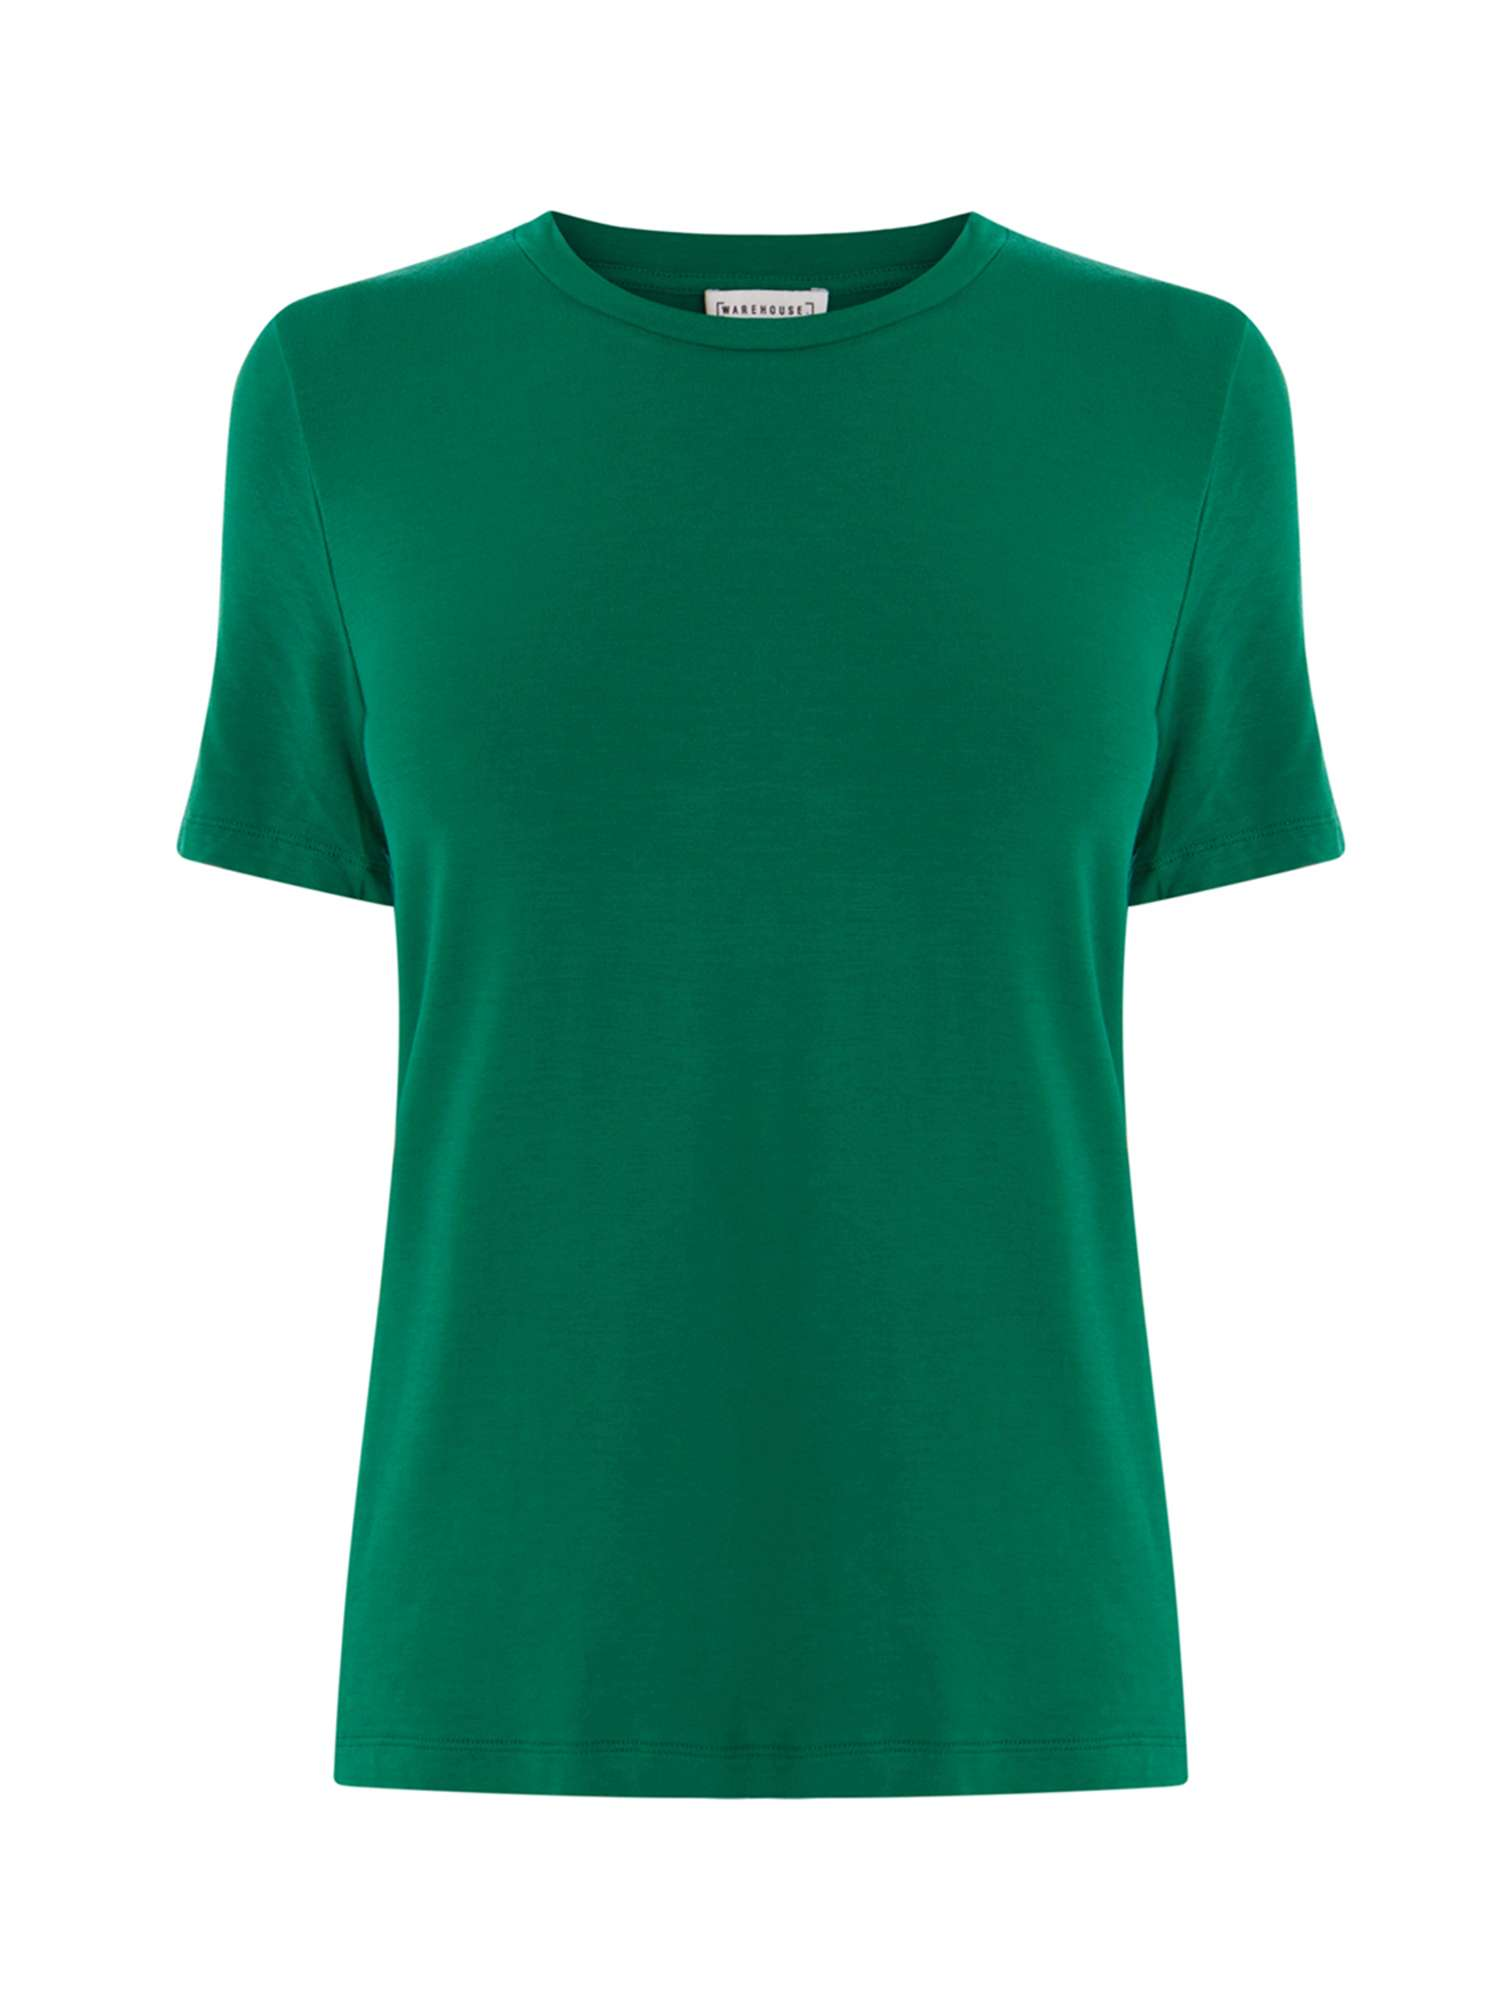 Warehouse Smart Fit Tee Smart Warehouse 7rp7Wnv0